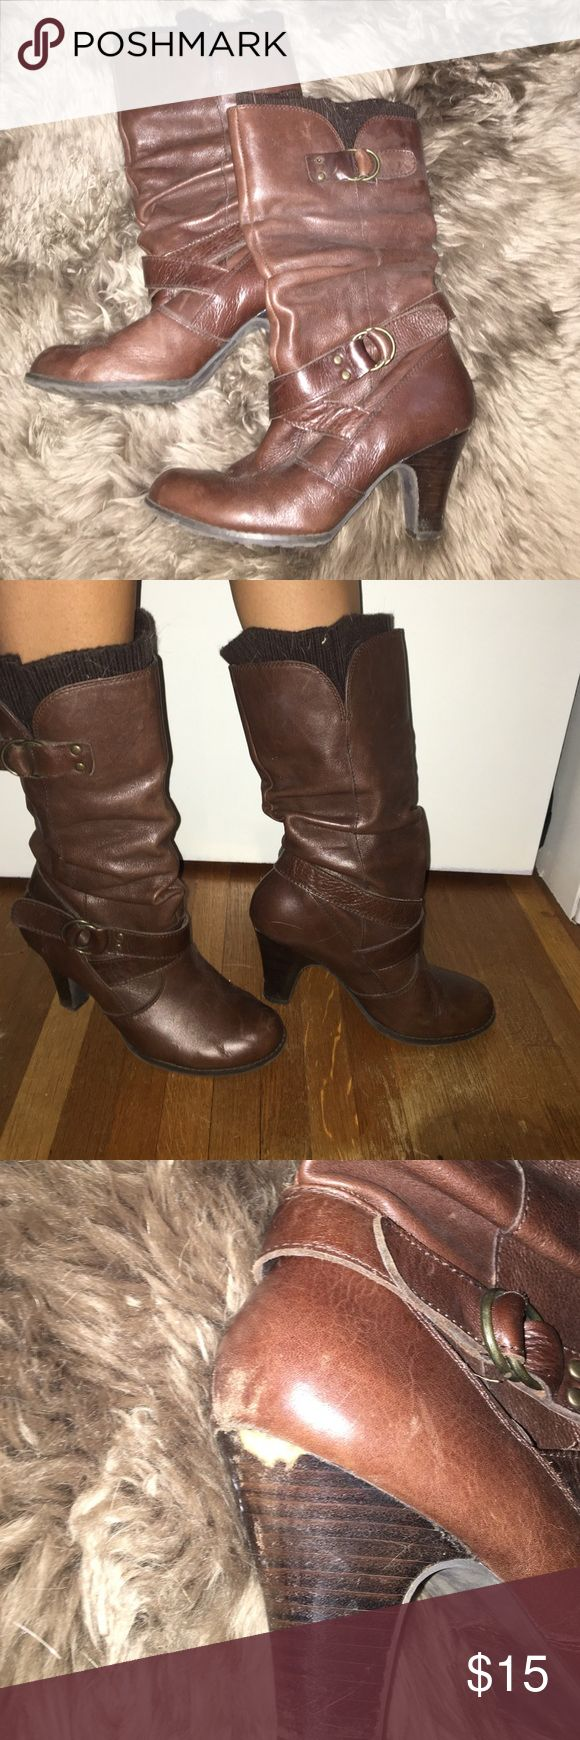 "Slouchy Aldo boots with removable ""boot sock"" Brown slouchy Aldo boots with buckle detail and removable ""boot sock"". Slight chipping on heel shown in photo. Aldo Shoes Heeled Boots"